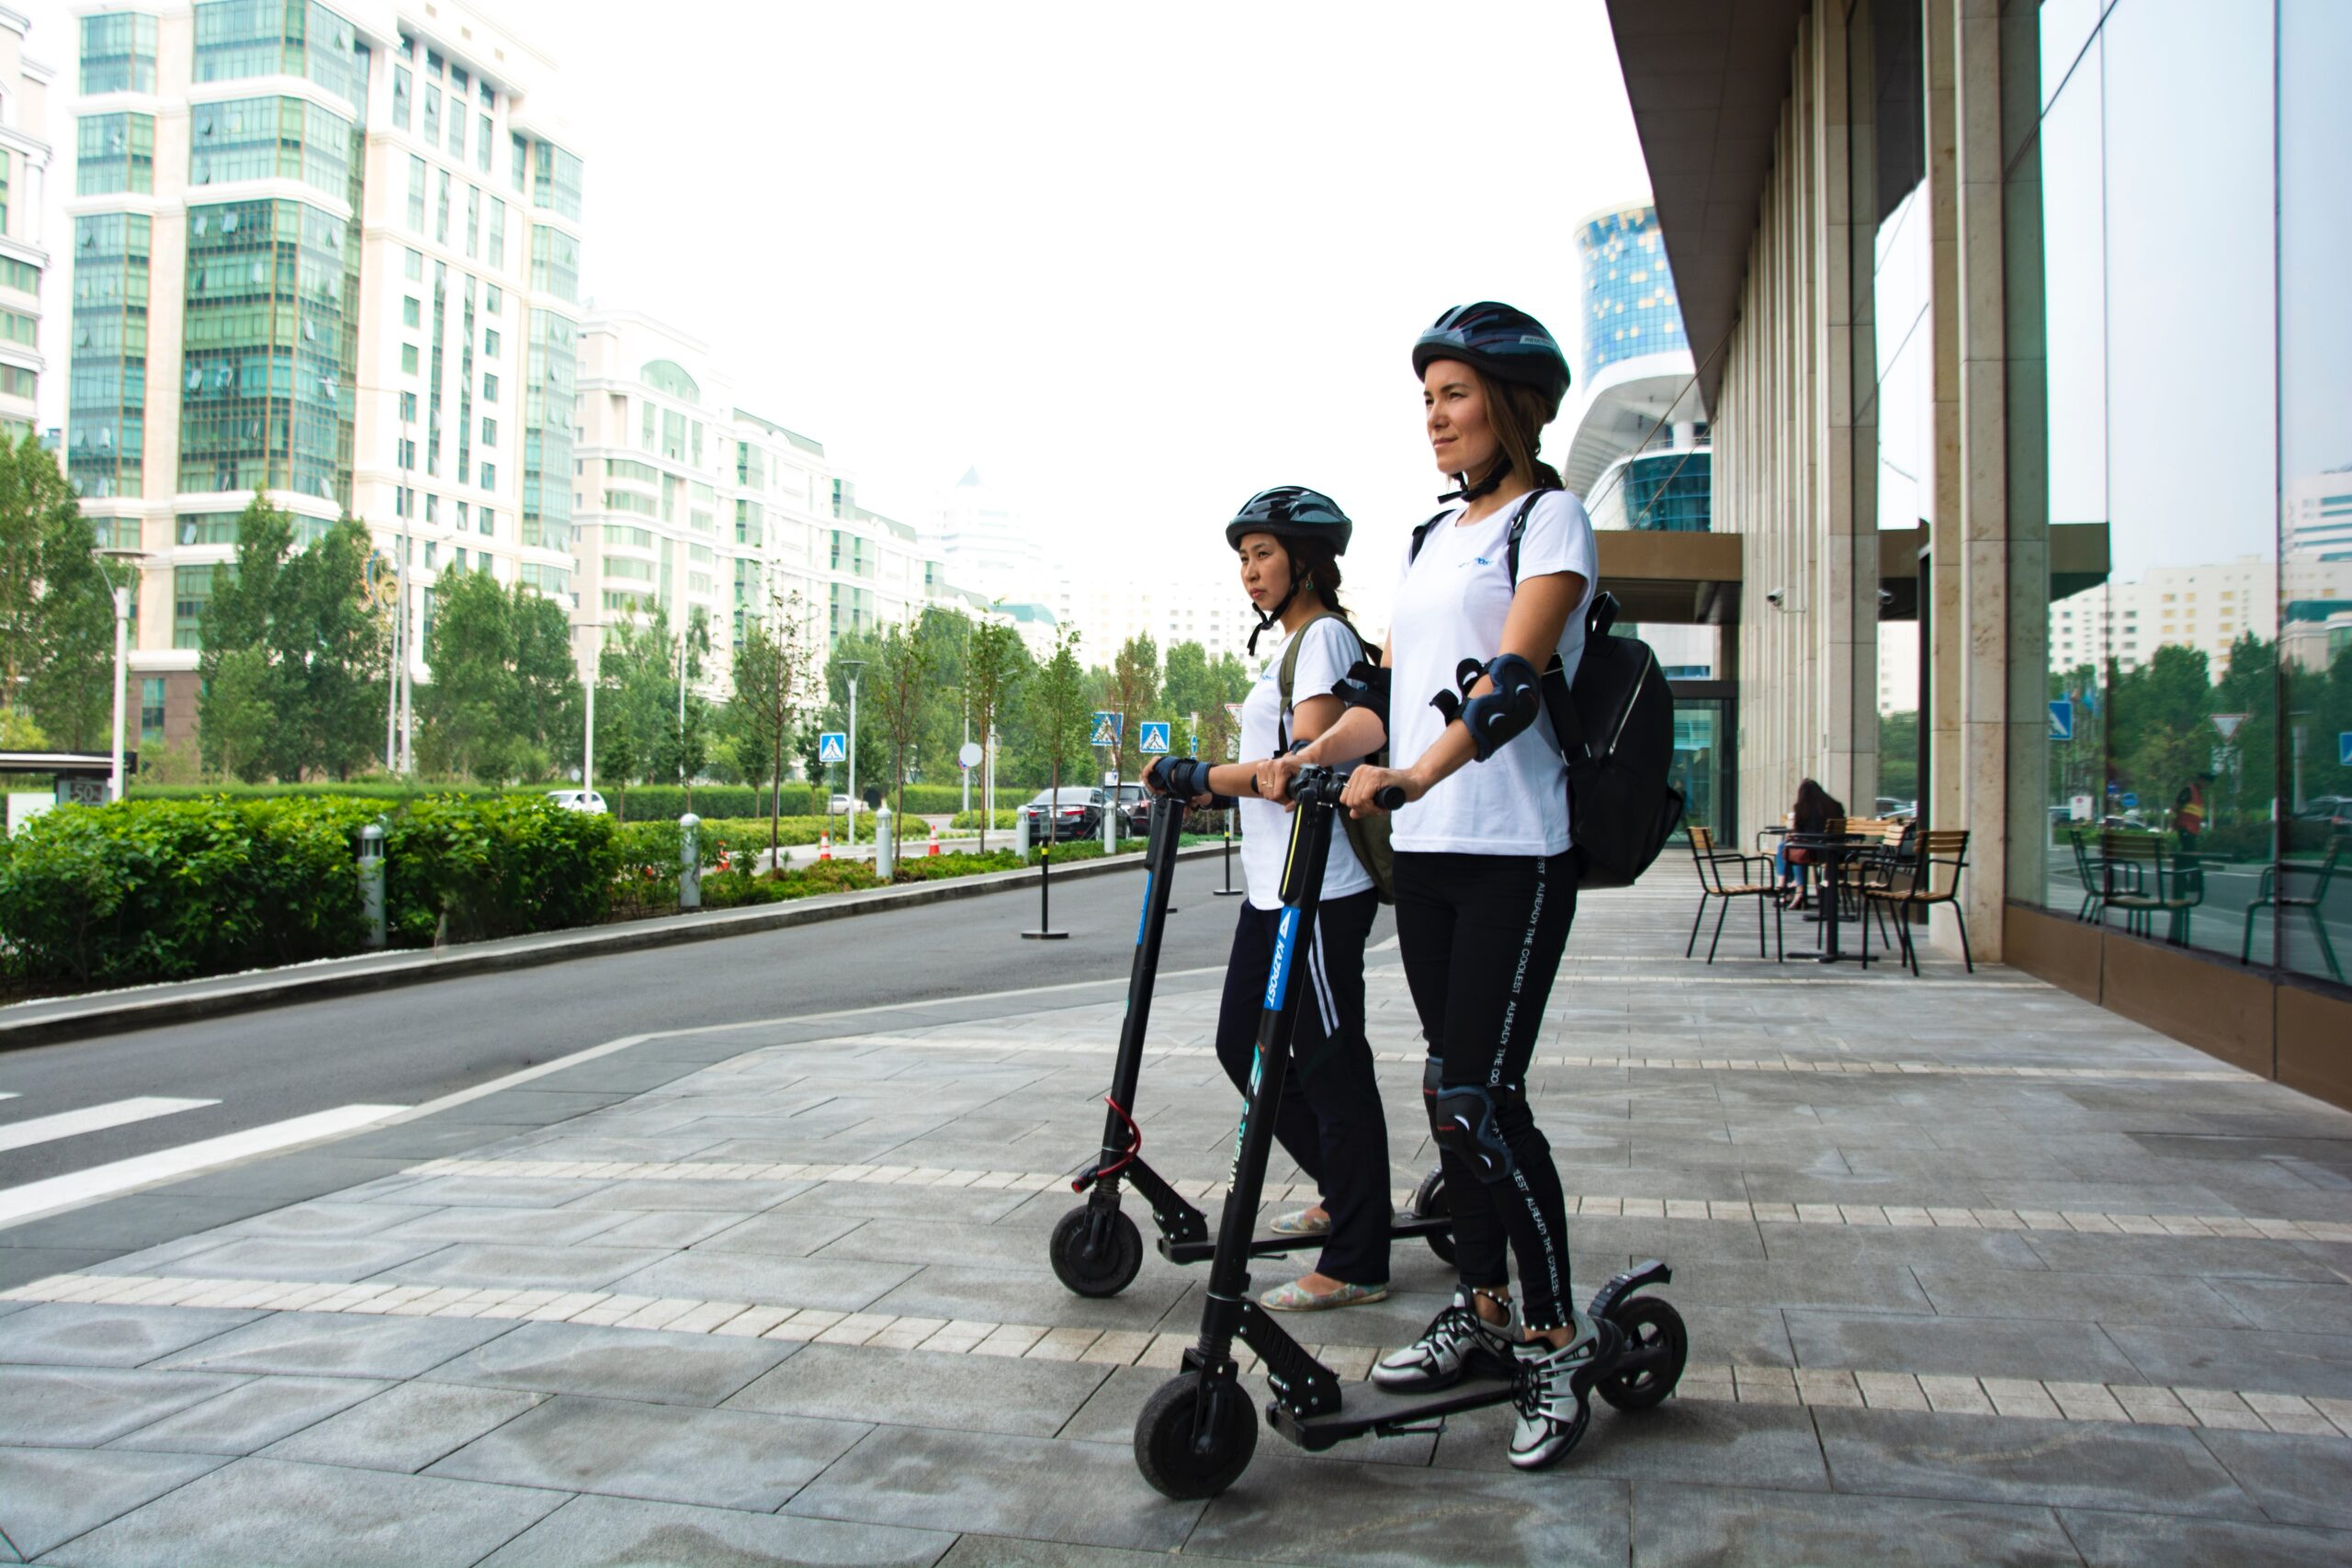 The Central Features of Electric Scooters